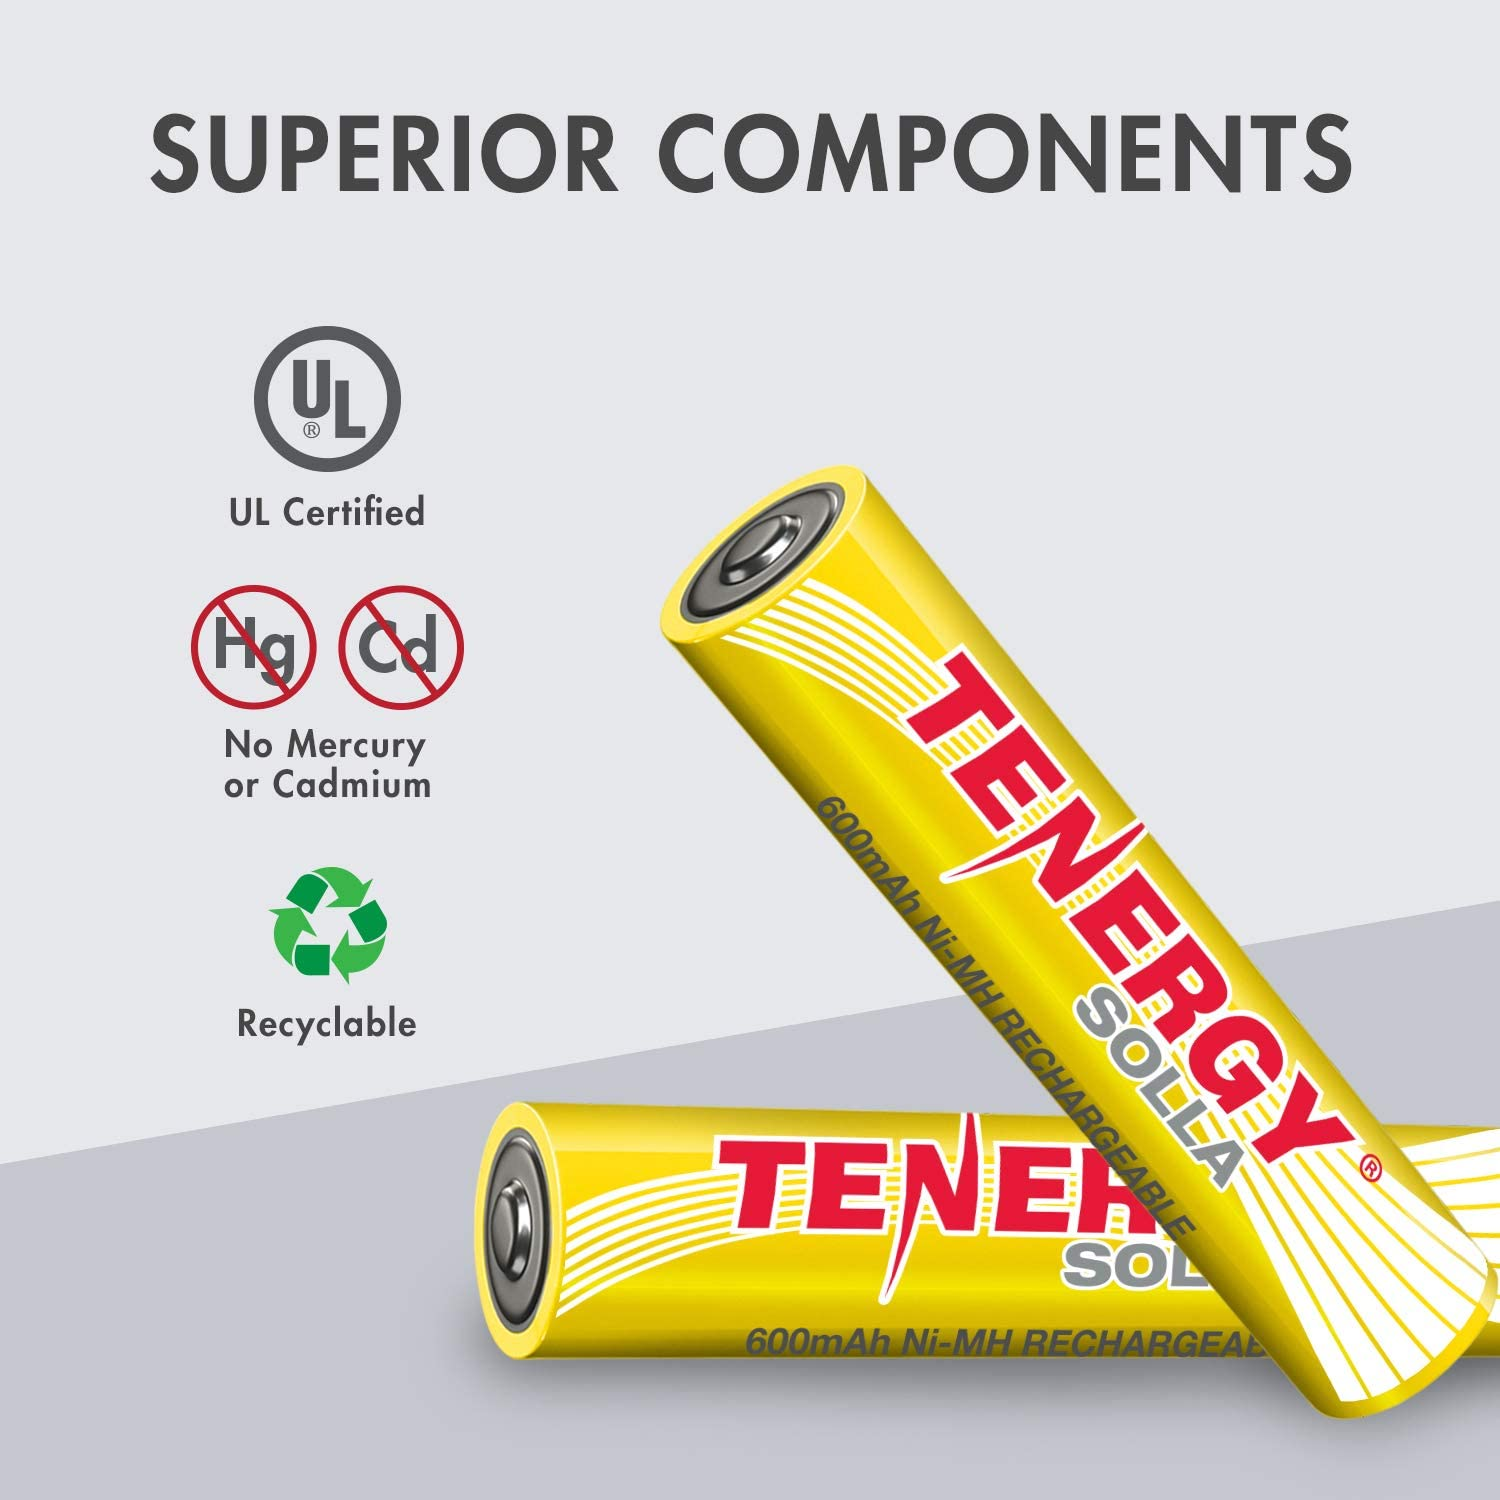 Tenergy Solla NiMH Rechargeable Battery for Solar Lights